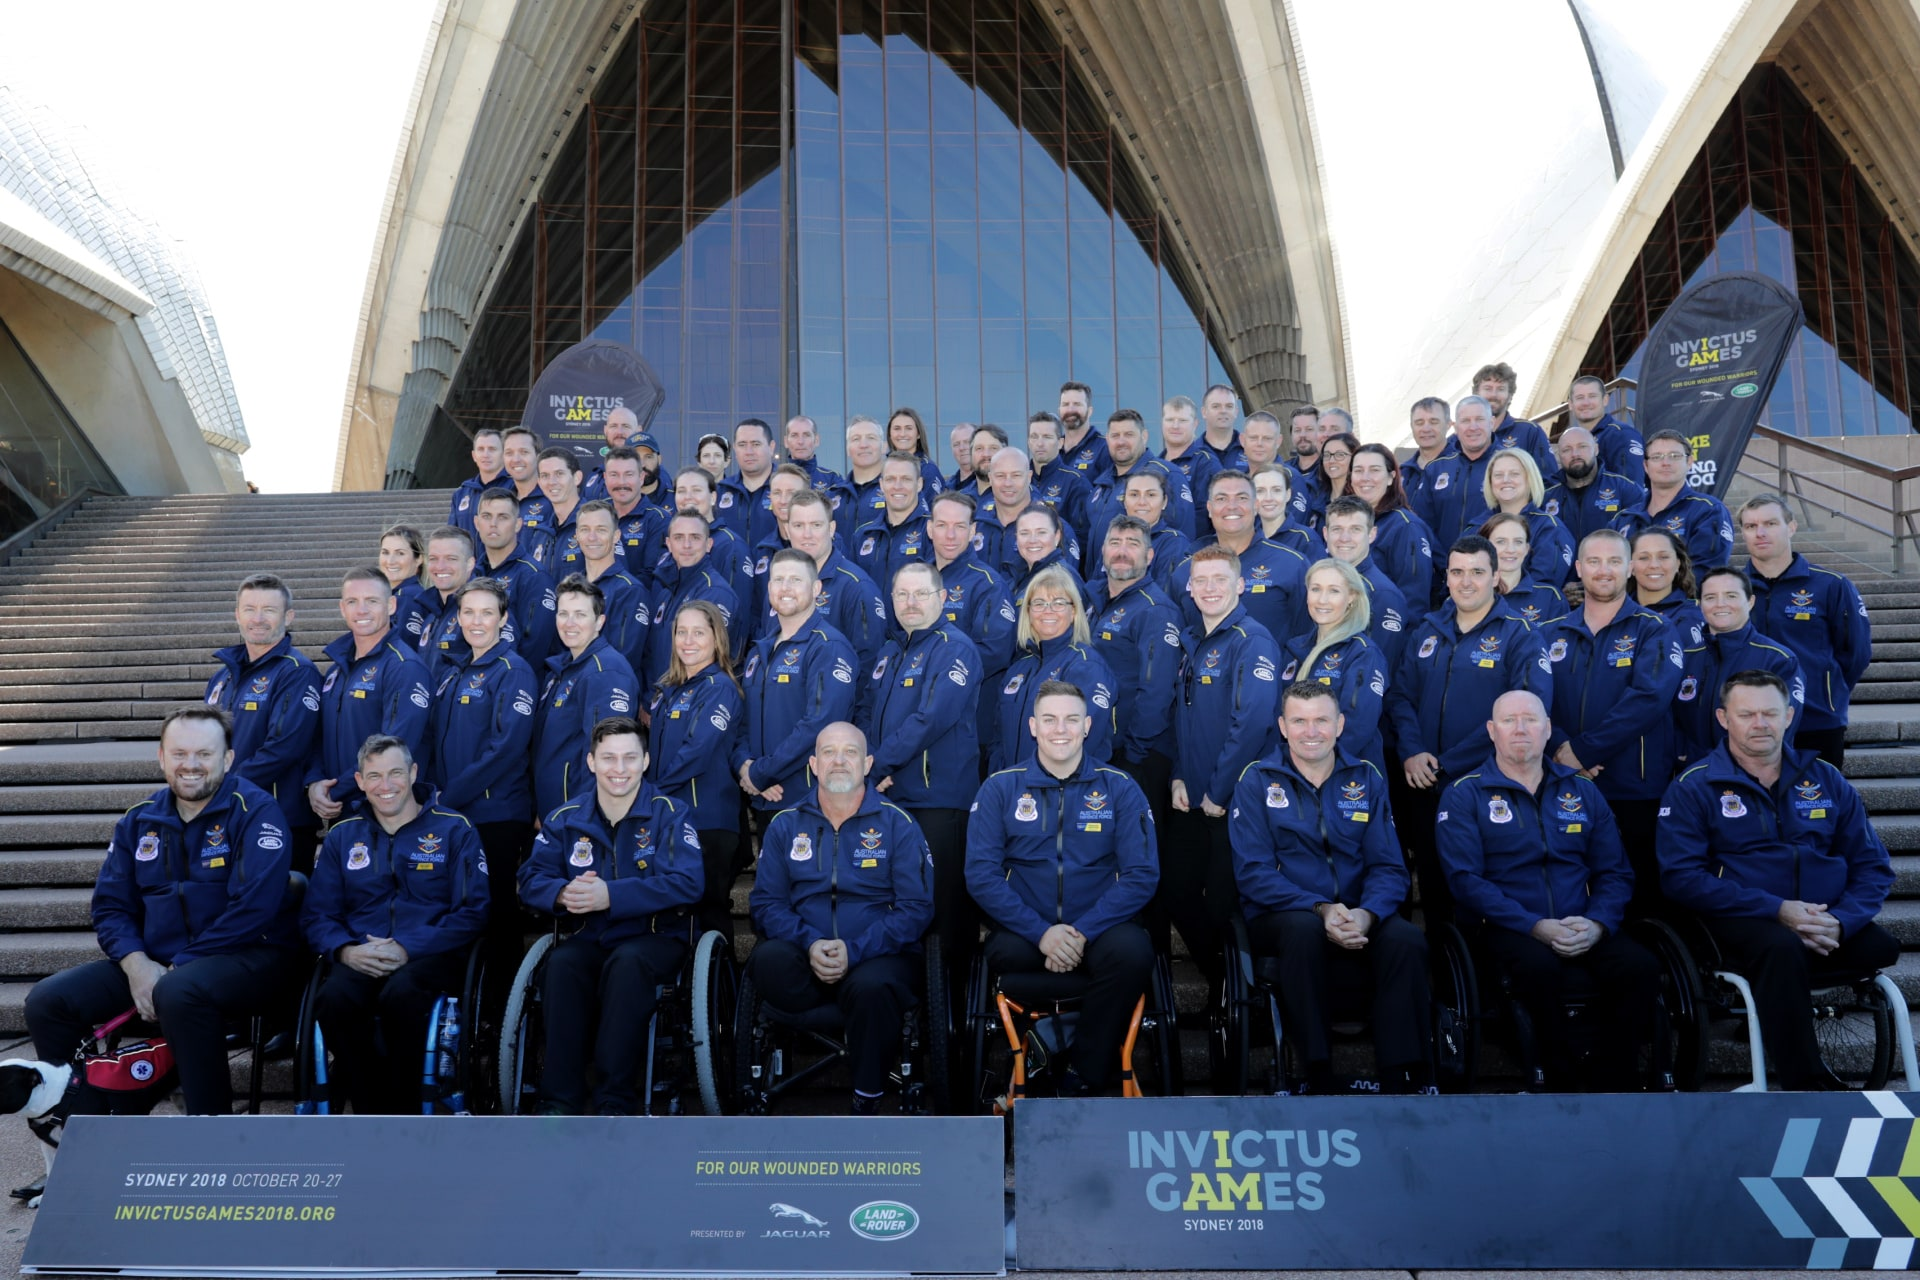 The Australian Invictus Games team on the steps of the Sydney Opera House. Image credit: Commonwealth of Australia Department of Defence